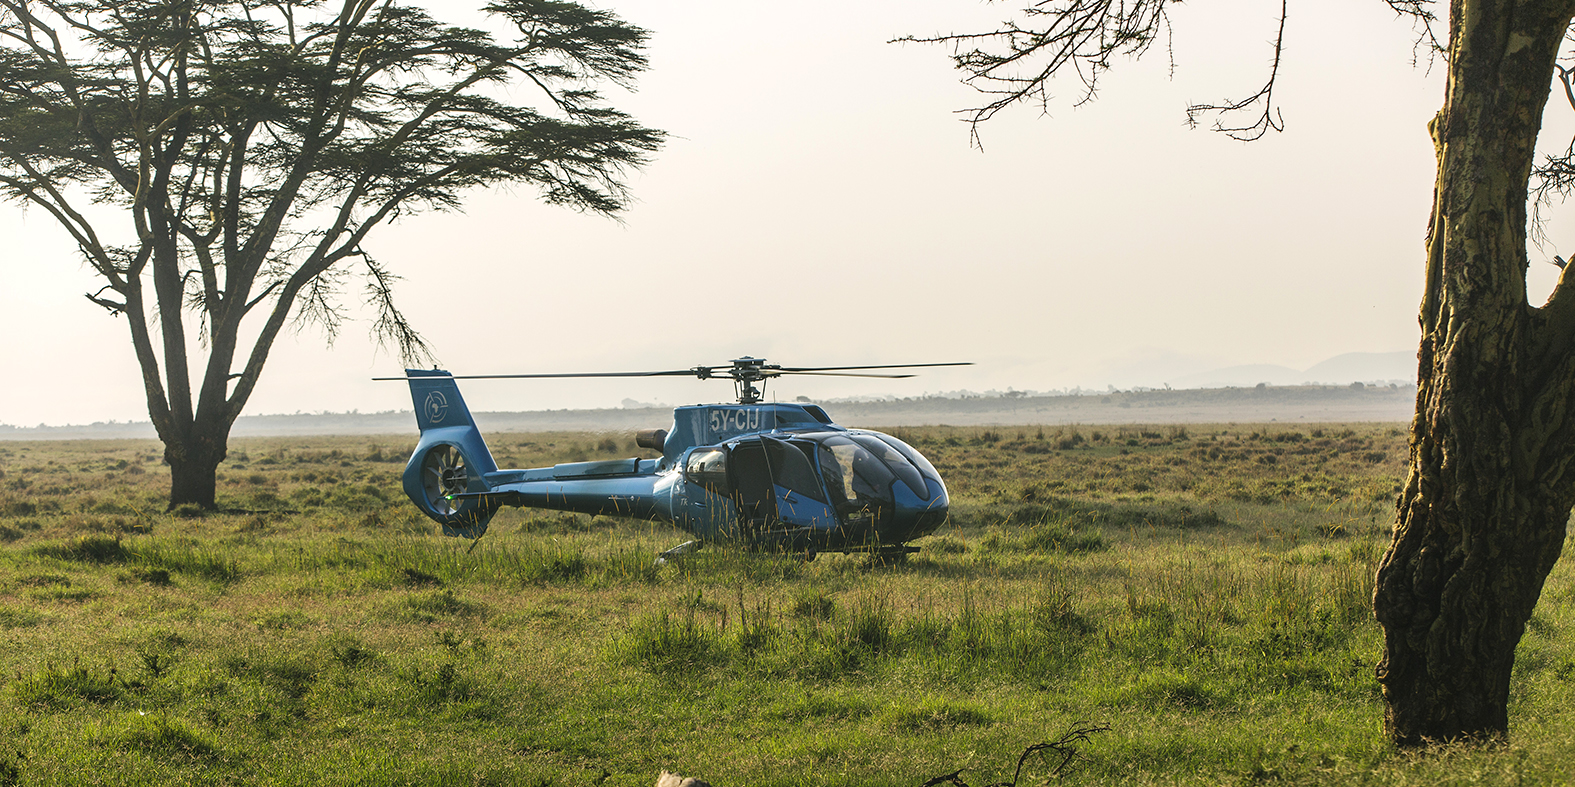 Helicopter H130 at Lewa Wildlife Conservancy, Kenya